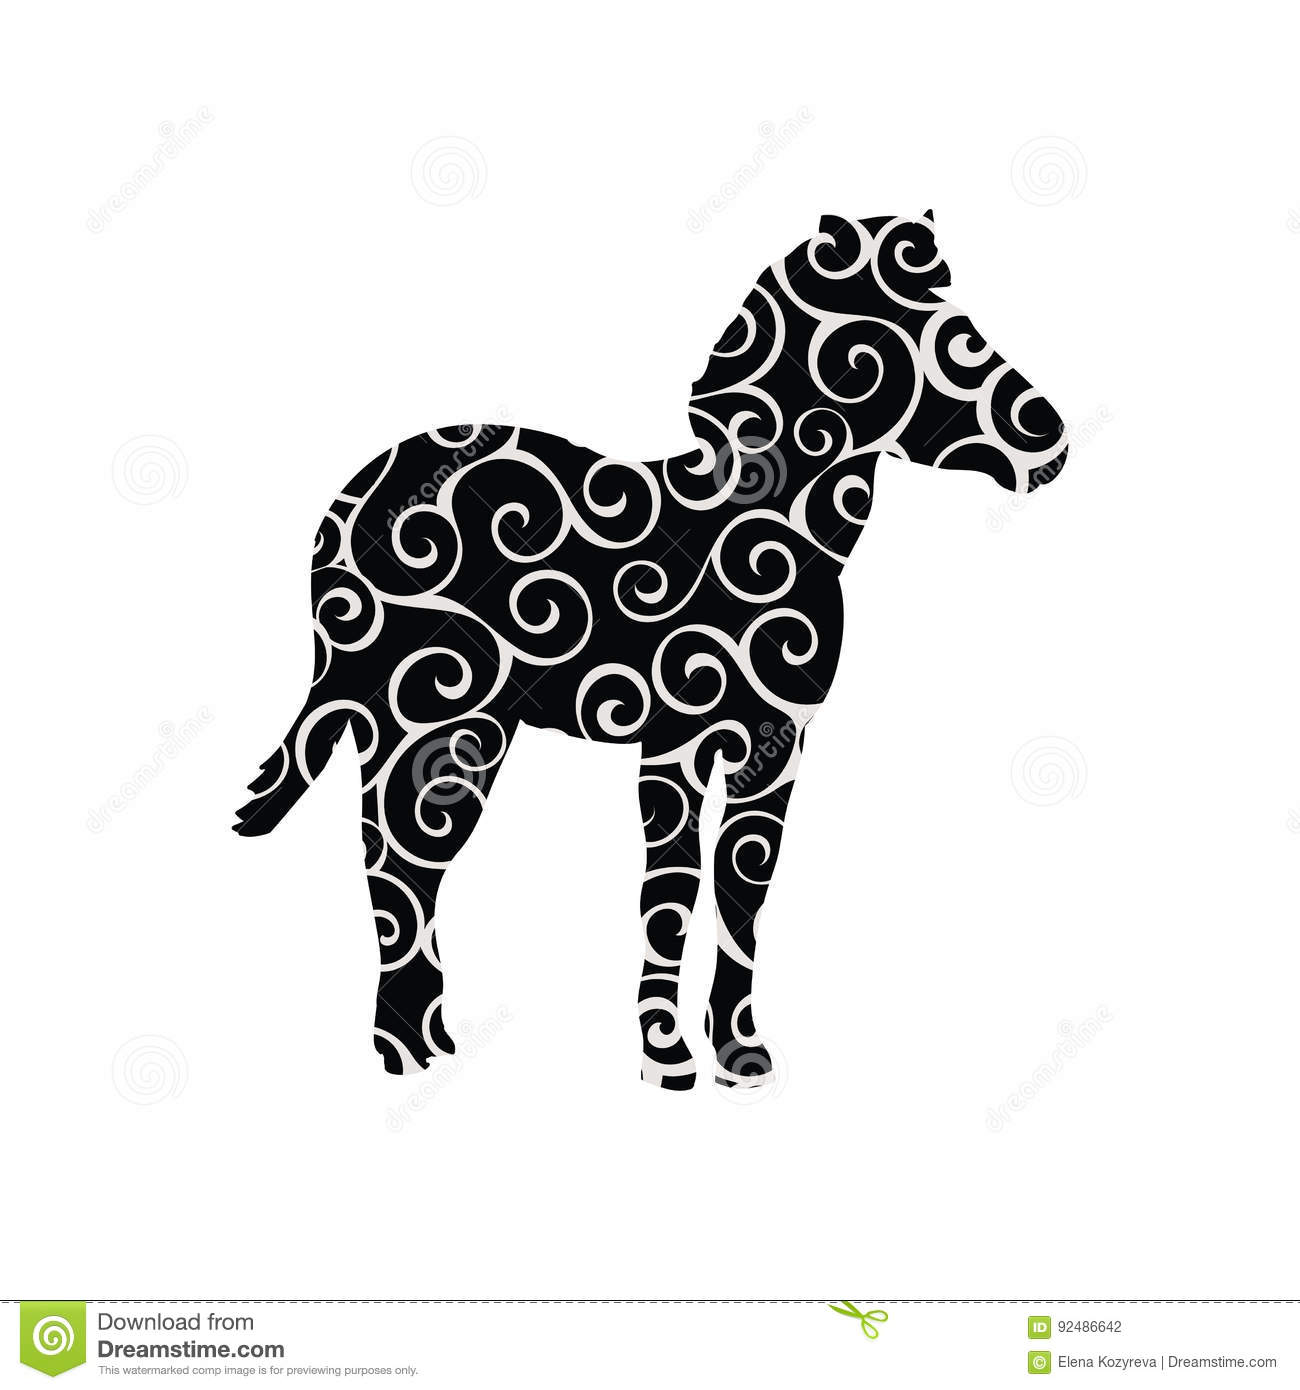 zebra mammal color silhouette animal stock vector